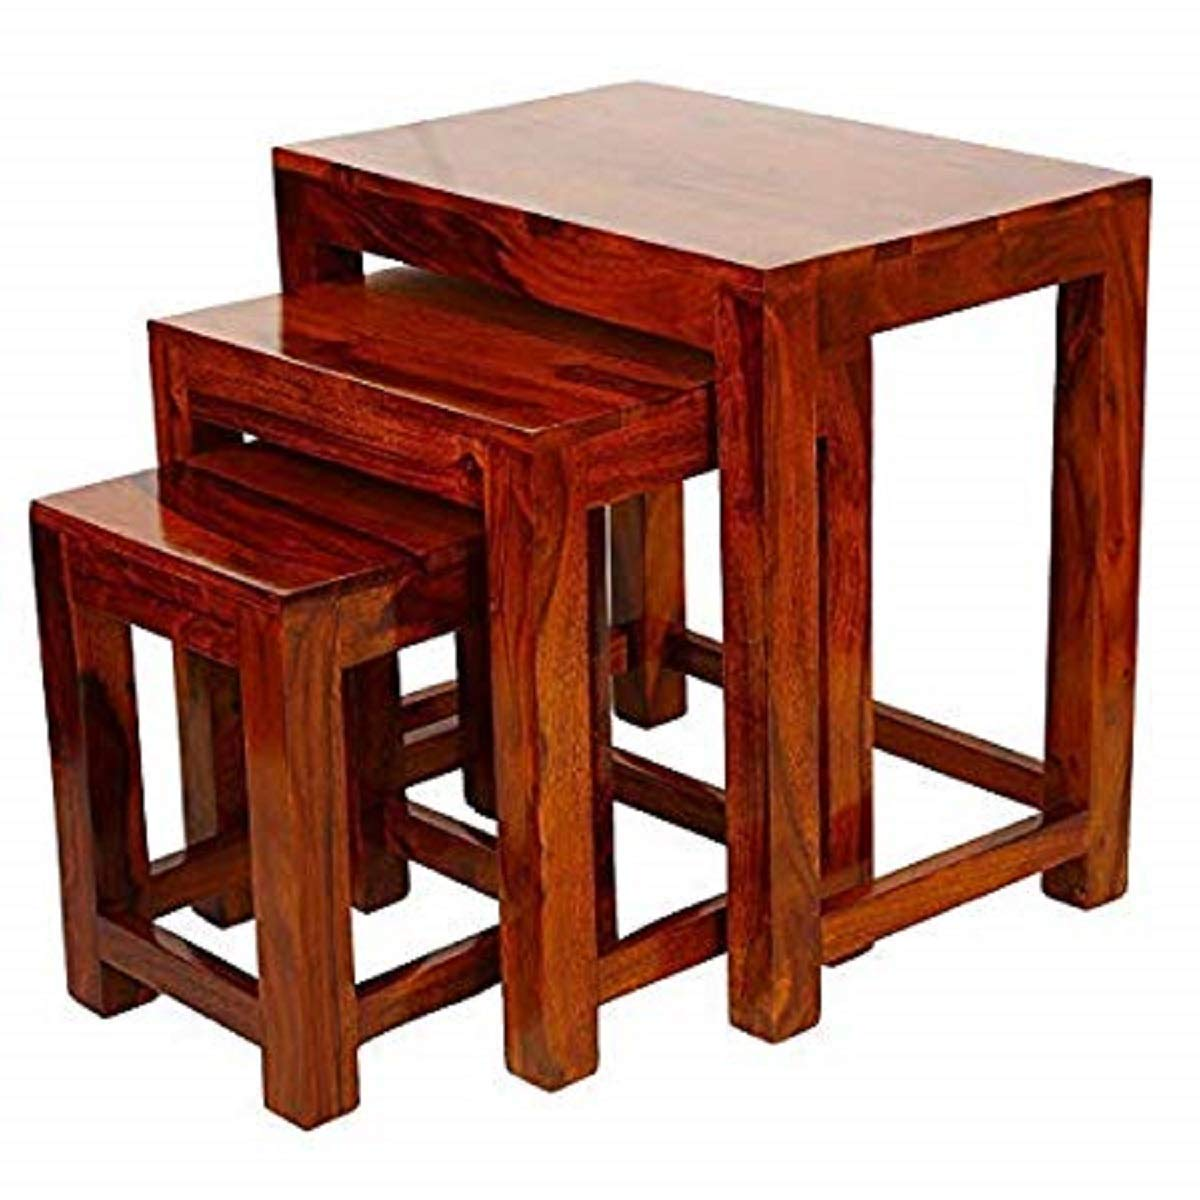 Zoby NEST TABLE SET OF THREE PLAIN TEAK Nature Finishing Height 45 cm x Width 30 cm x Length 45 cm